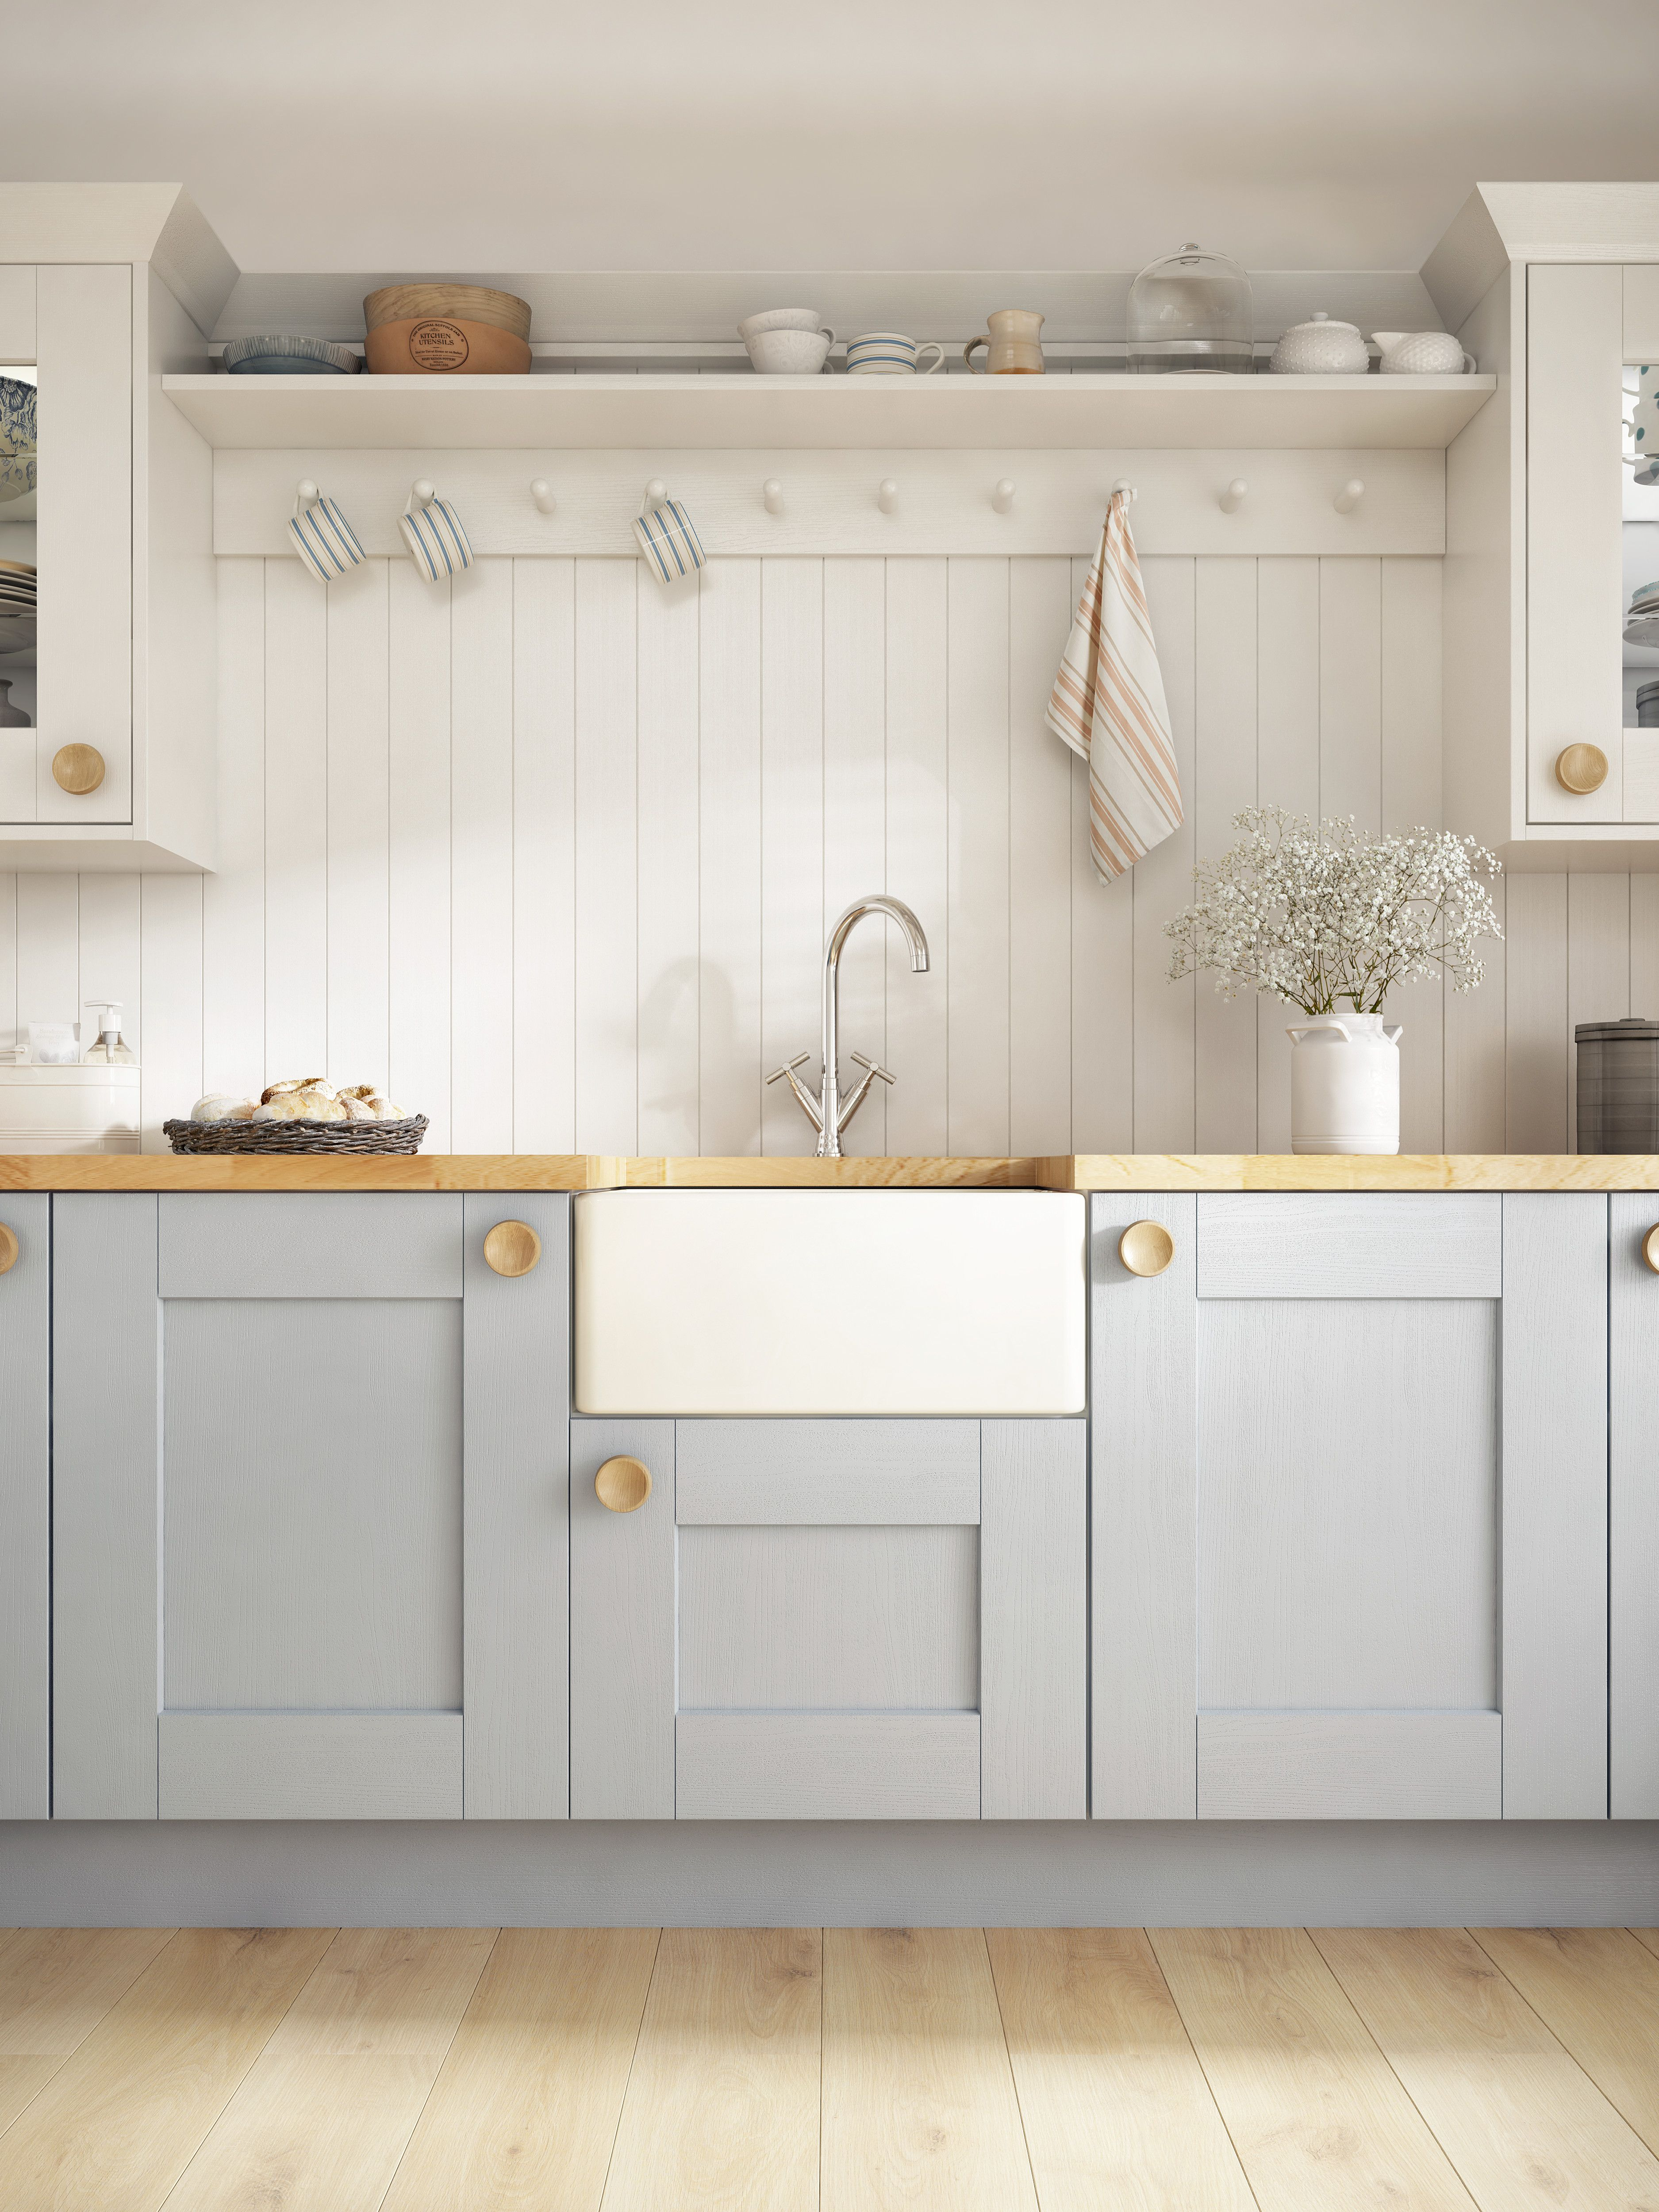 Lackirer Maler Whitby From The Laura Ashley Kitchen Collection